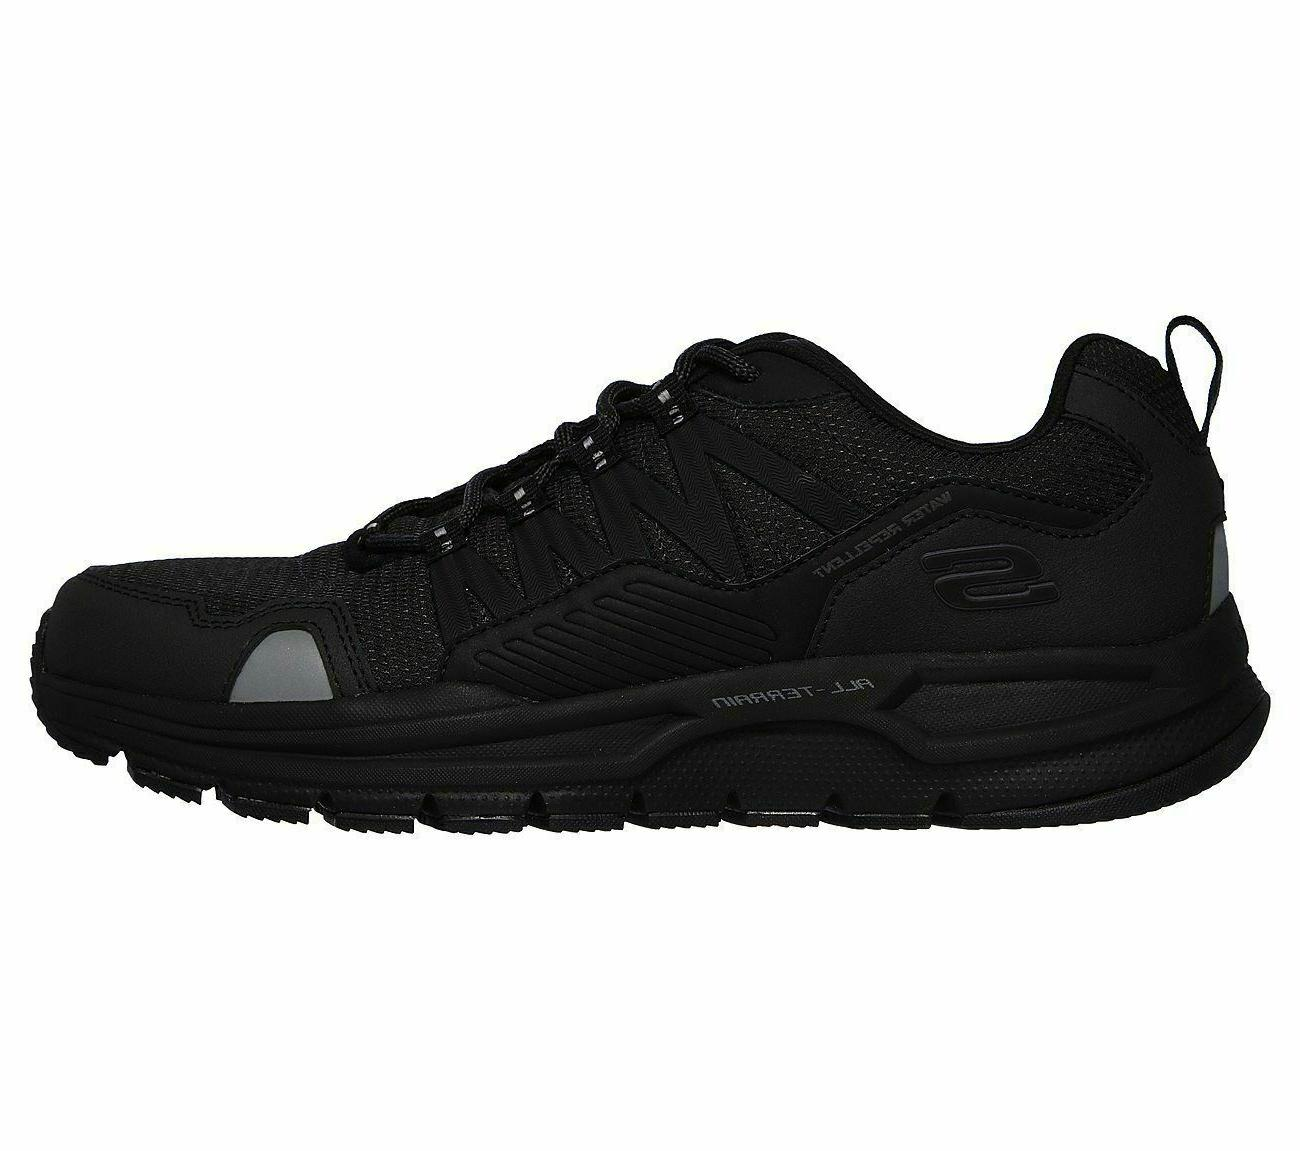 Black Skechers Shoes Casual Hiking athletic